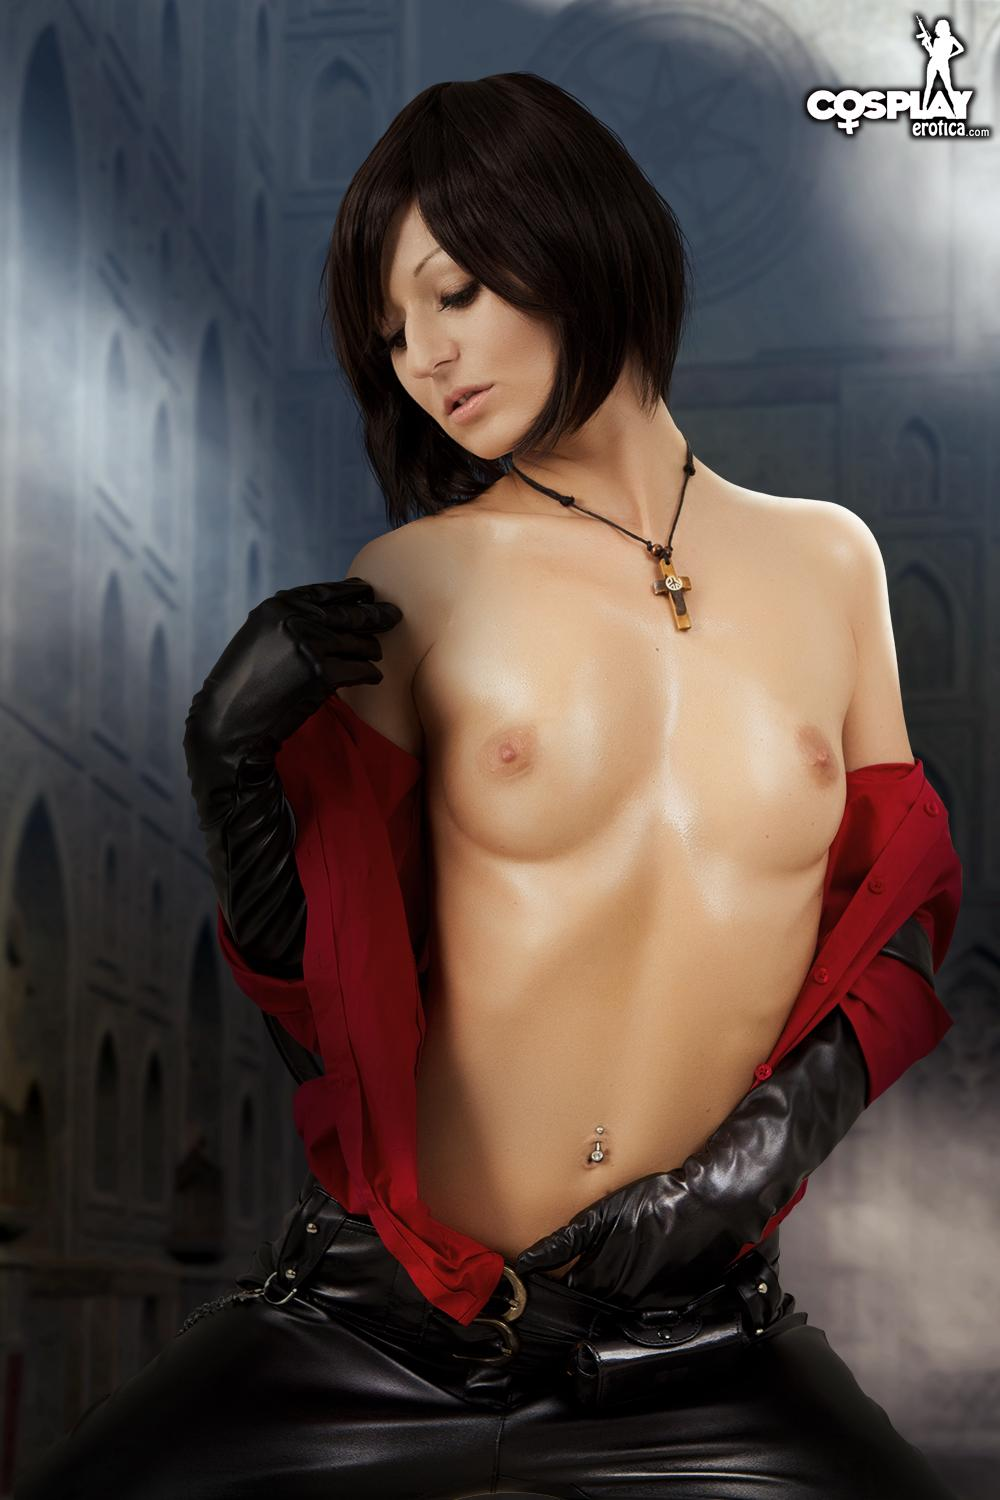 resident evil cosplay nude